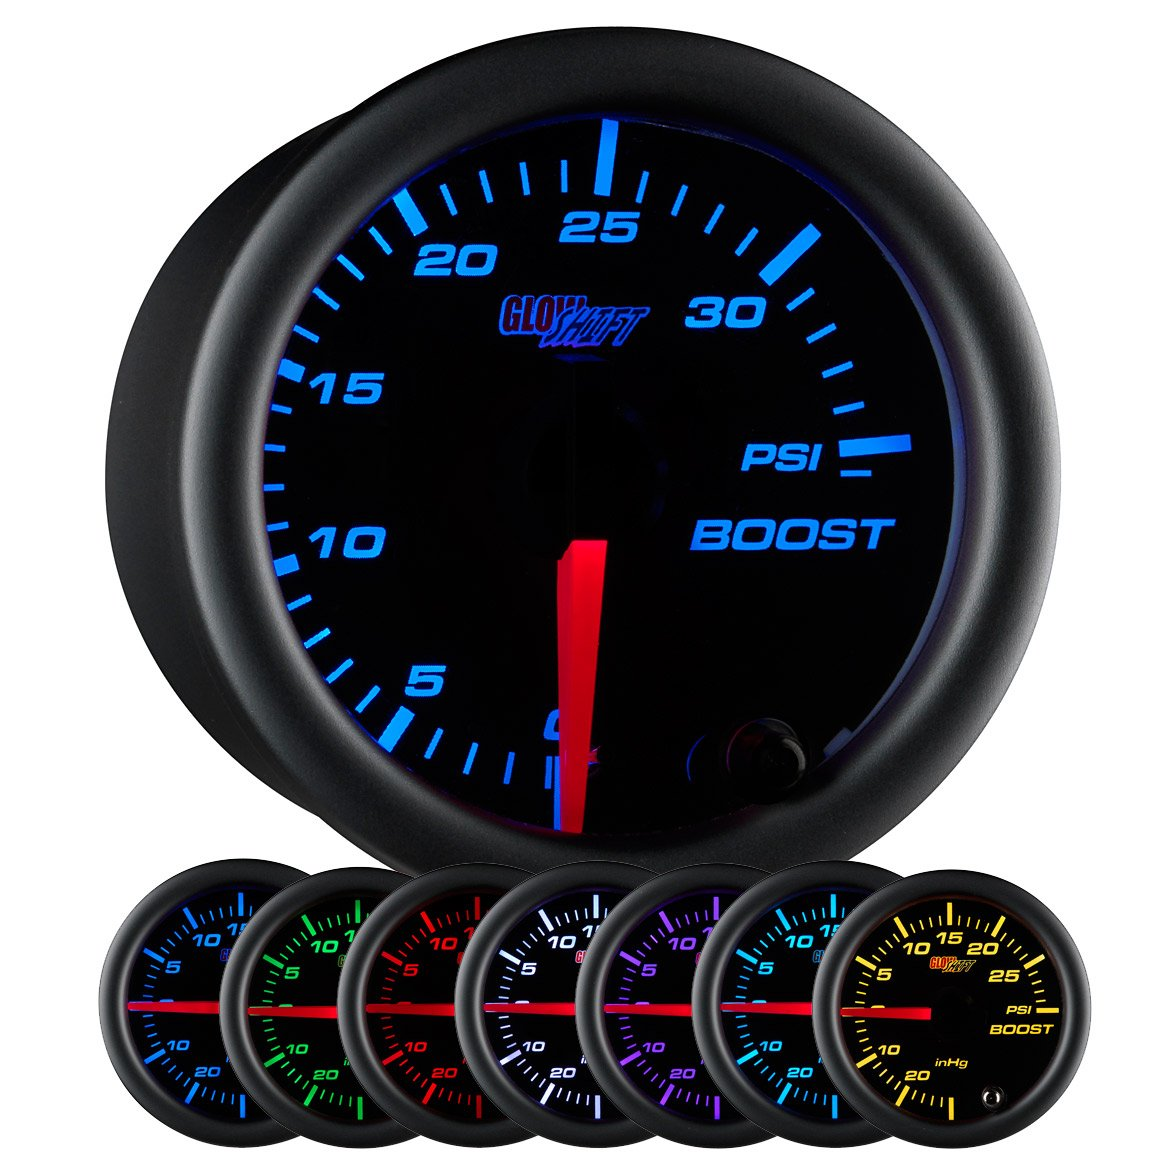 71VmG3692yL._SL1165_ amazon com glowshift black 7 color 35 psi boost gauge automotive  at couponss.co